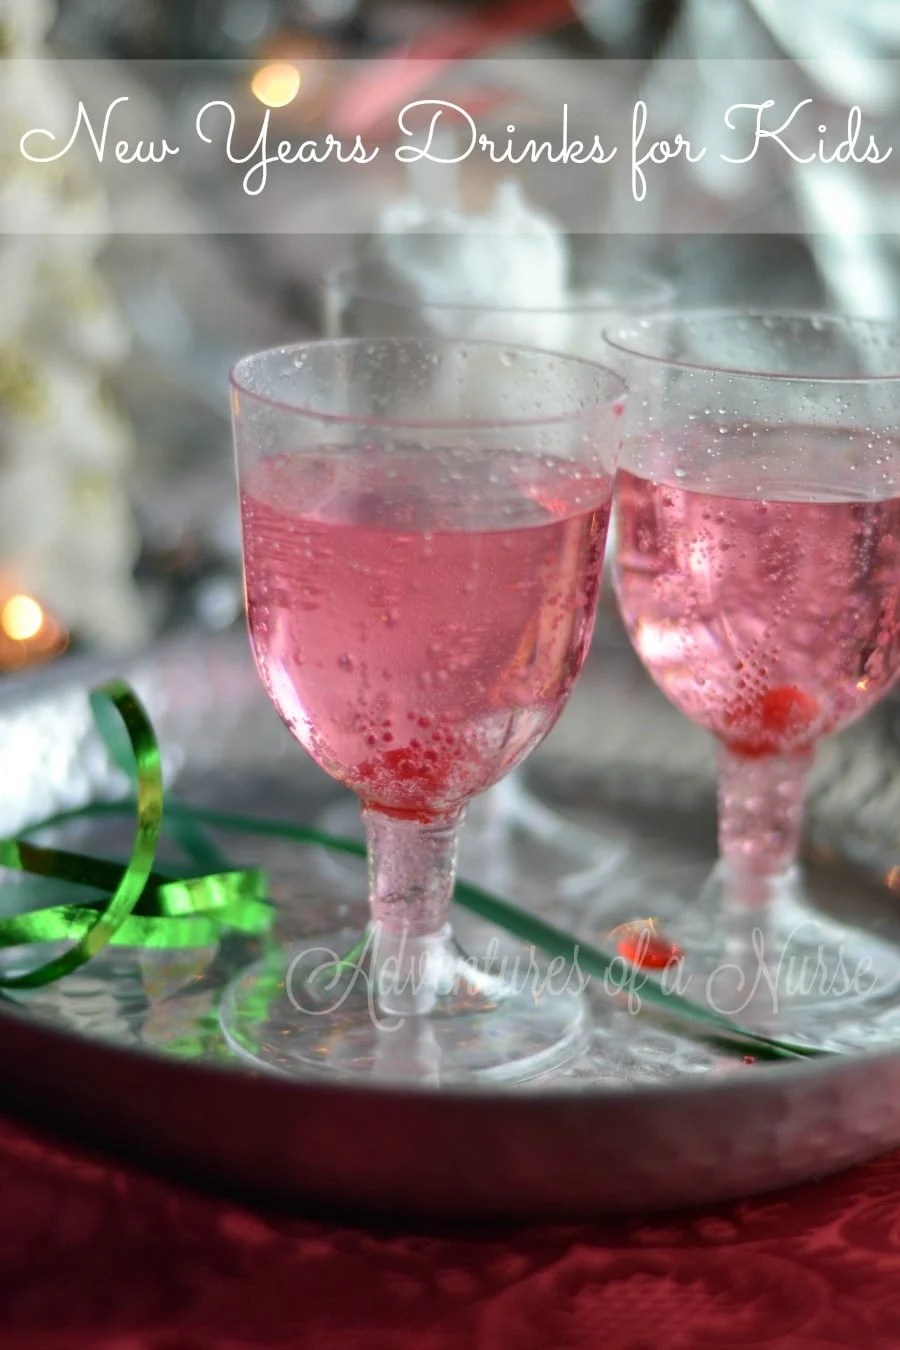 Cotton Candy New Years Drinks for Kids